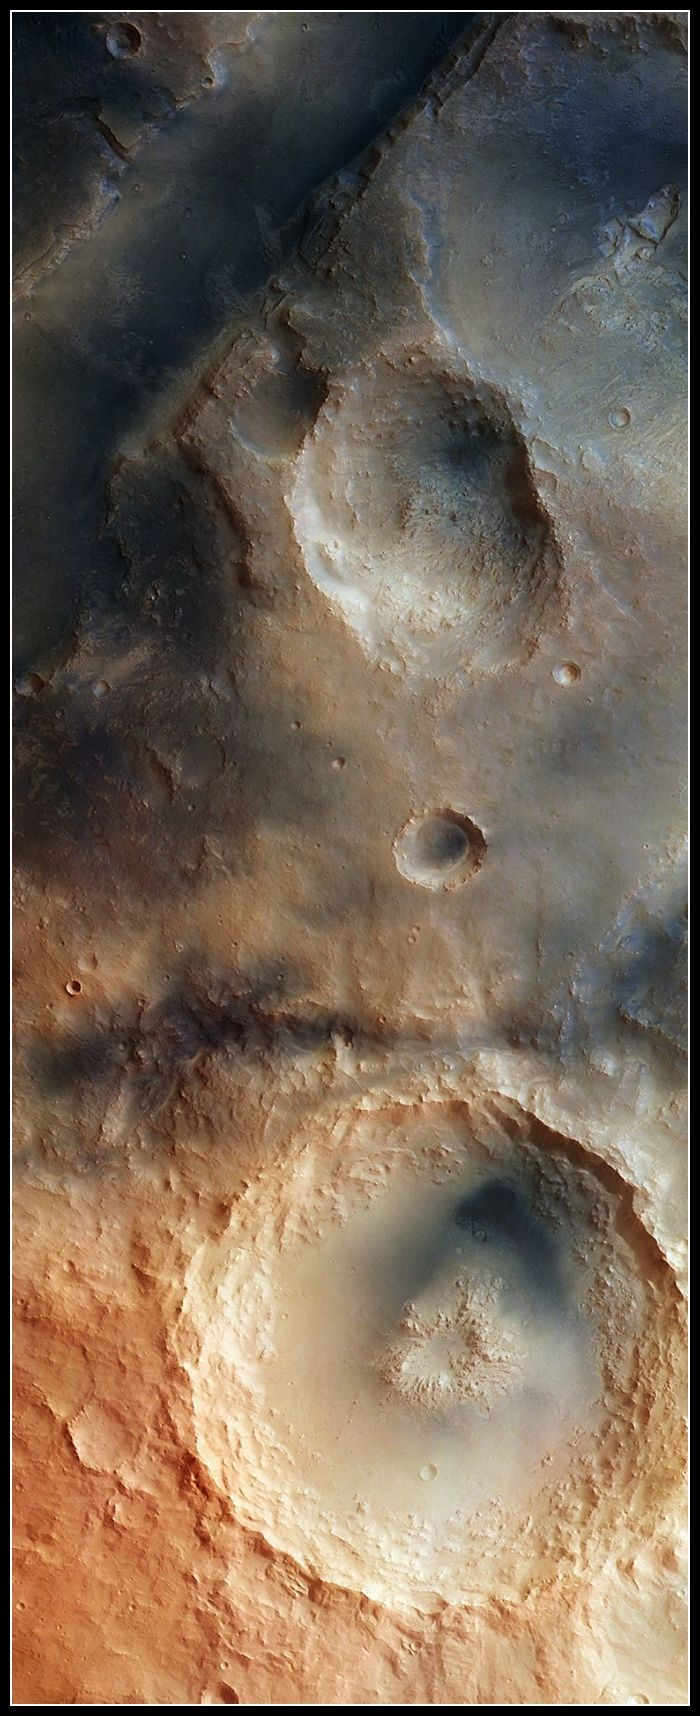 The Syrtis Major Volcanic Province - The Martian Surface Acquired by the High Resolution Stereo Camera on ESA's Mars Express Satellite, this image depicts a detailed region of the Martian Nili Fossae Graben system. This system is an area of great interest